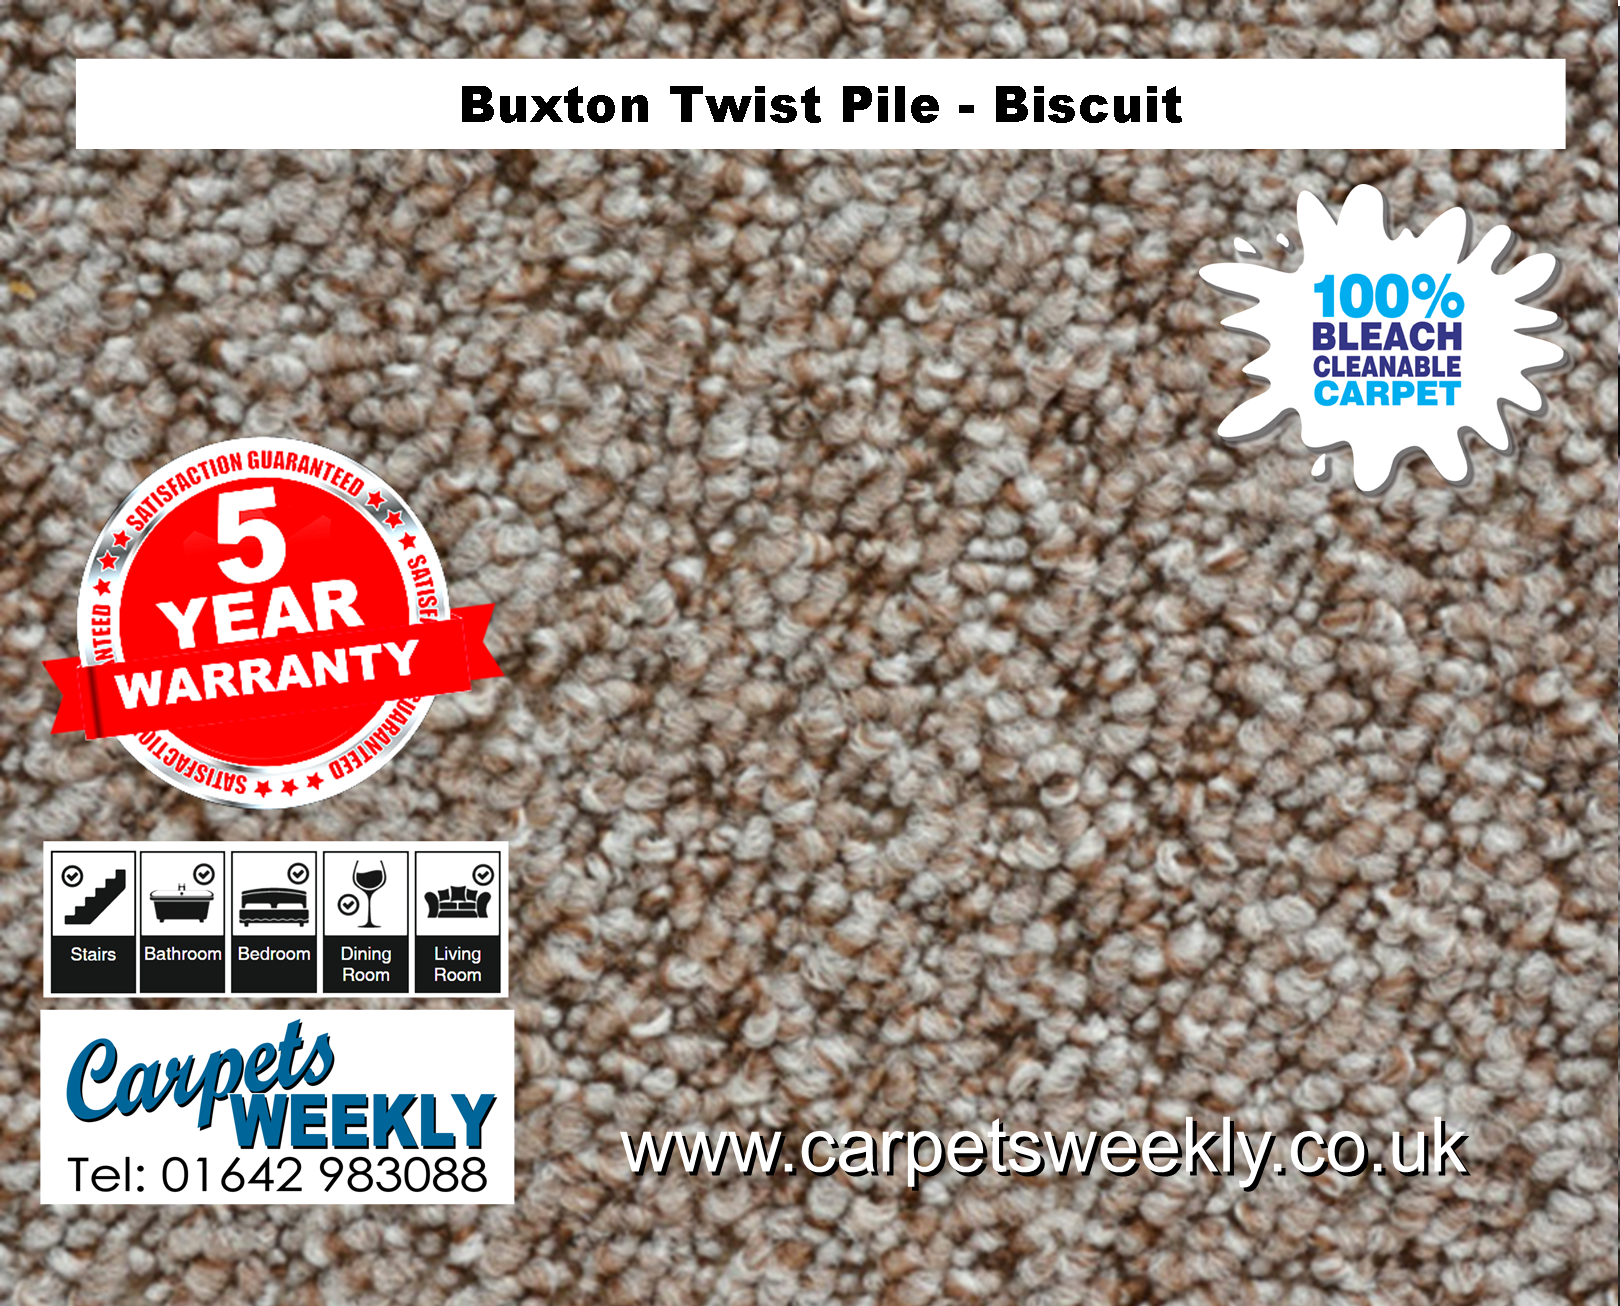 Buxton Monet Twist Pile Carpet Biscuit from Carpets Weekly